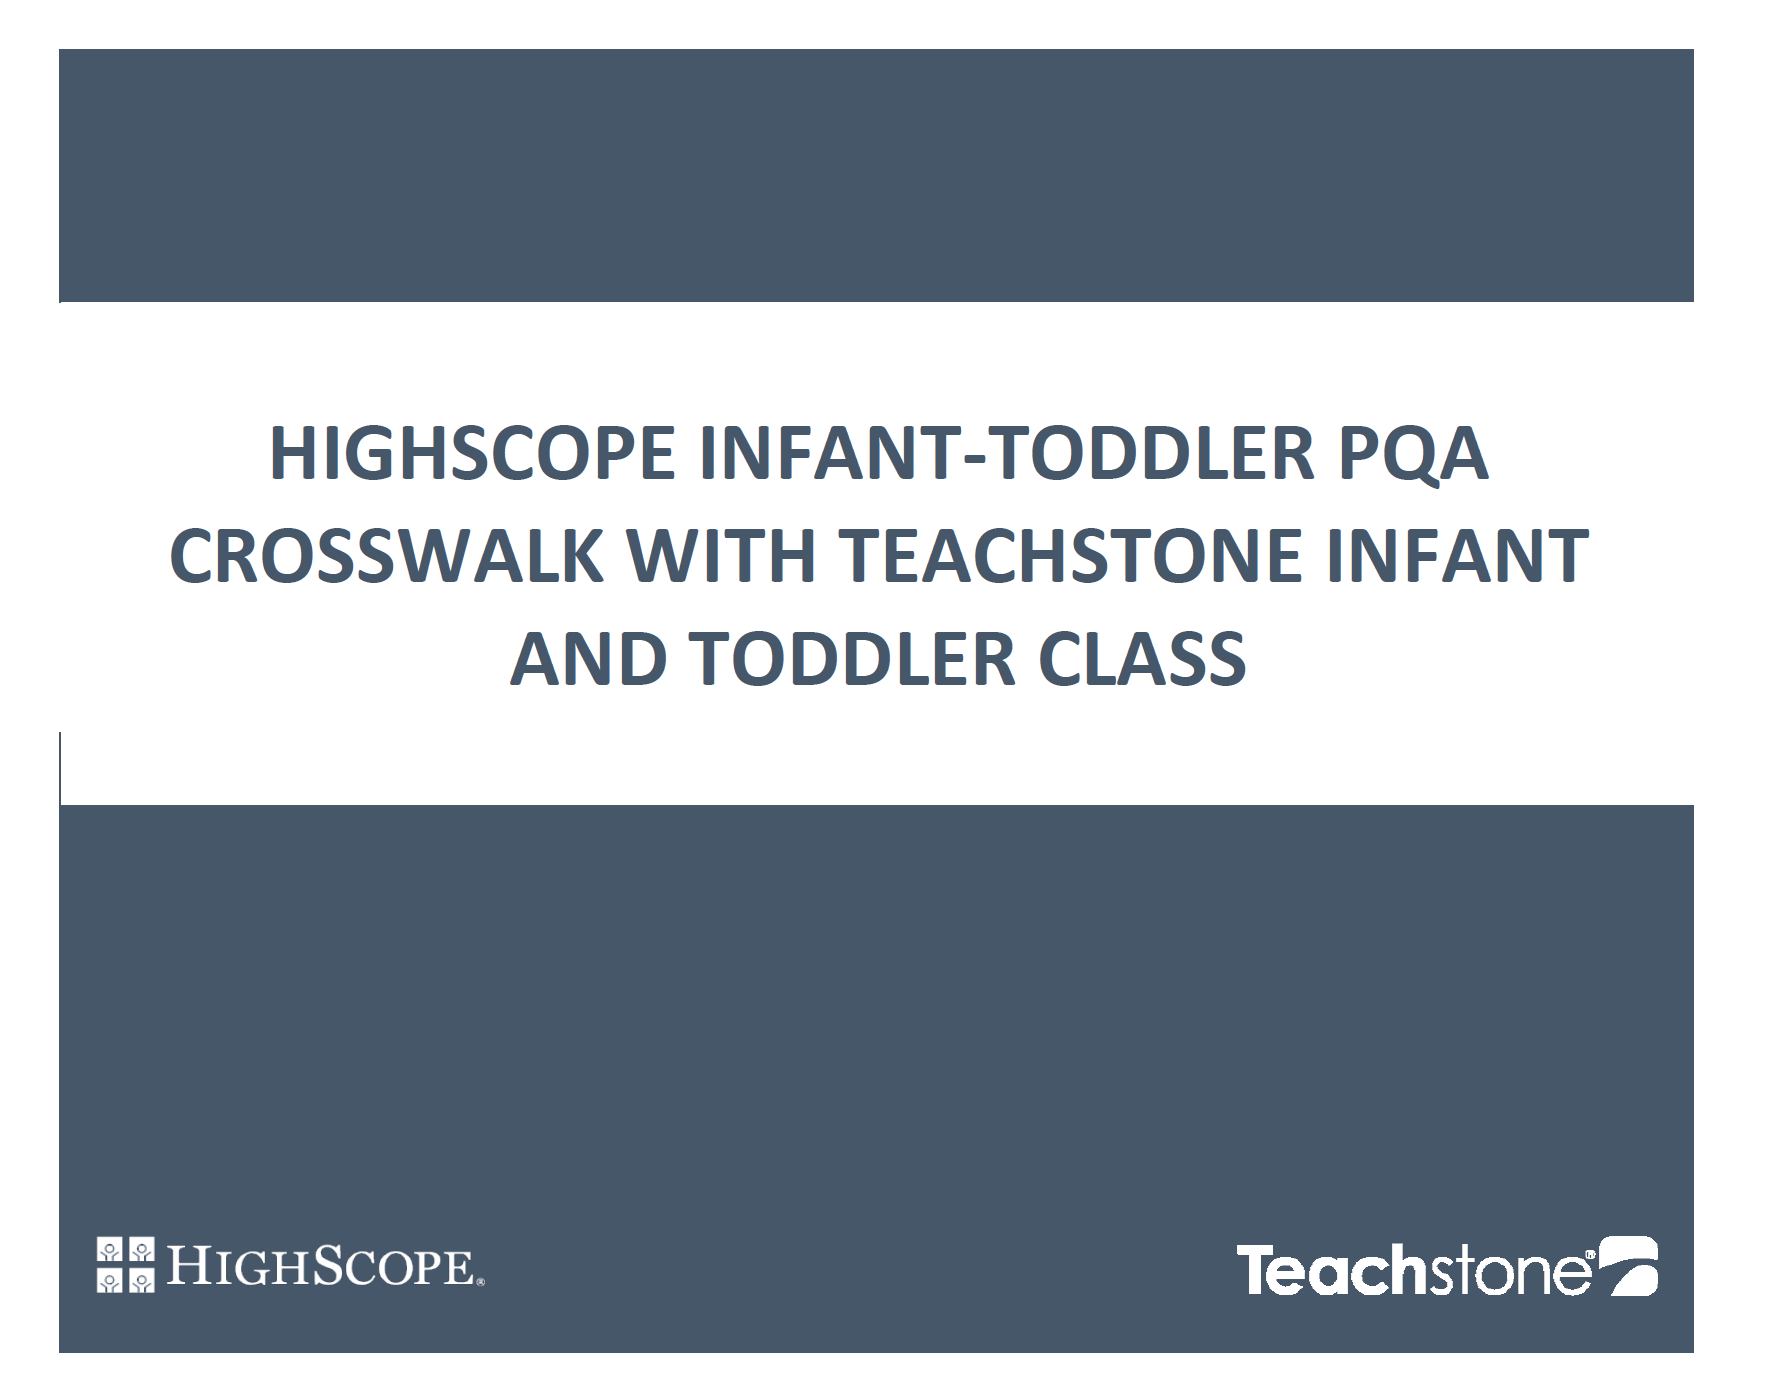 HighScope Infant-Toddler PQA and Infant/Toddler CLASS